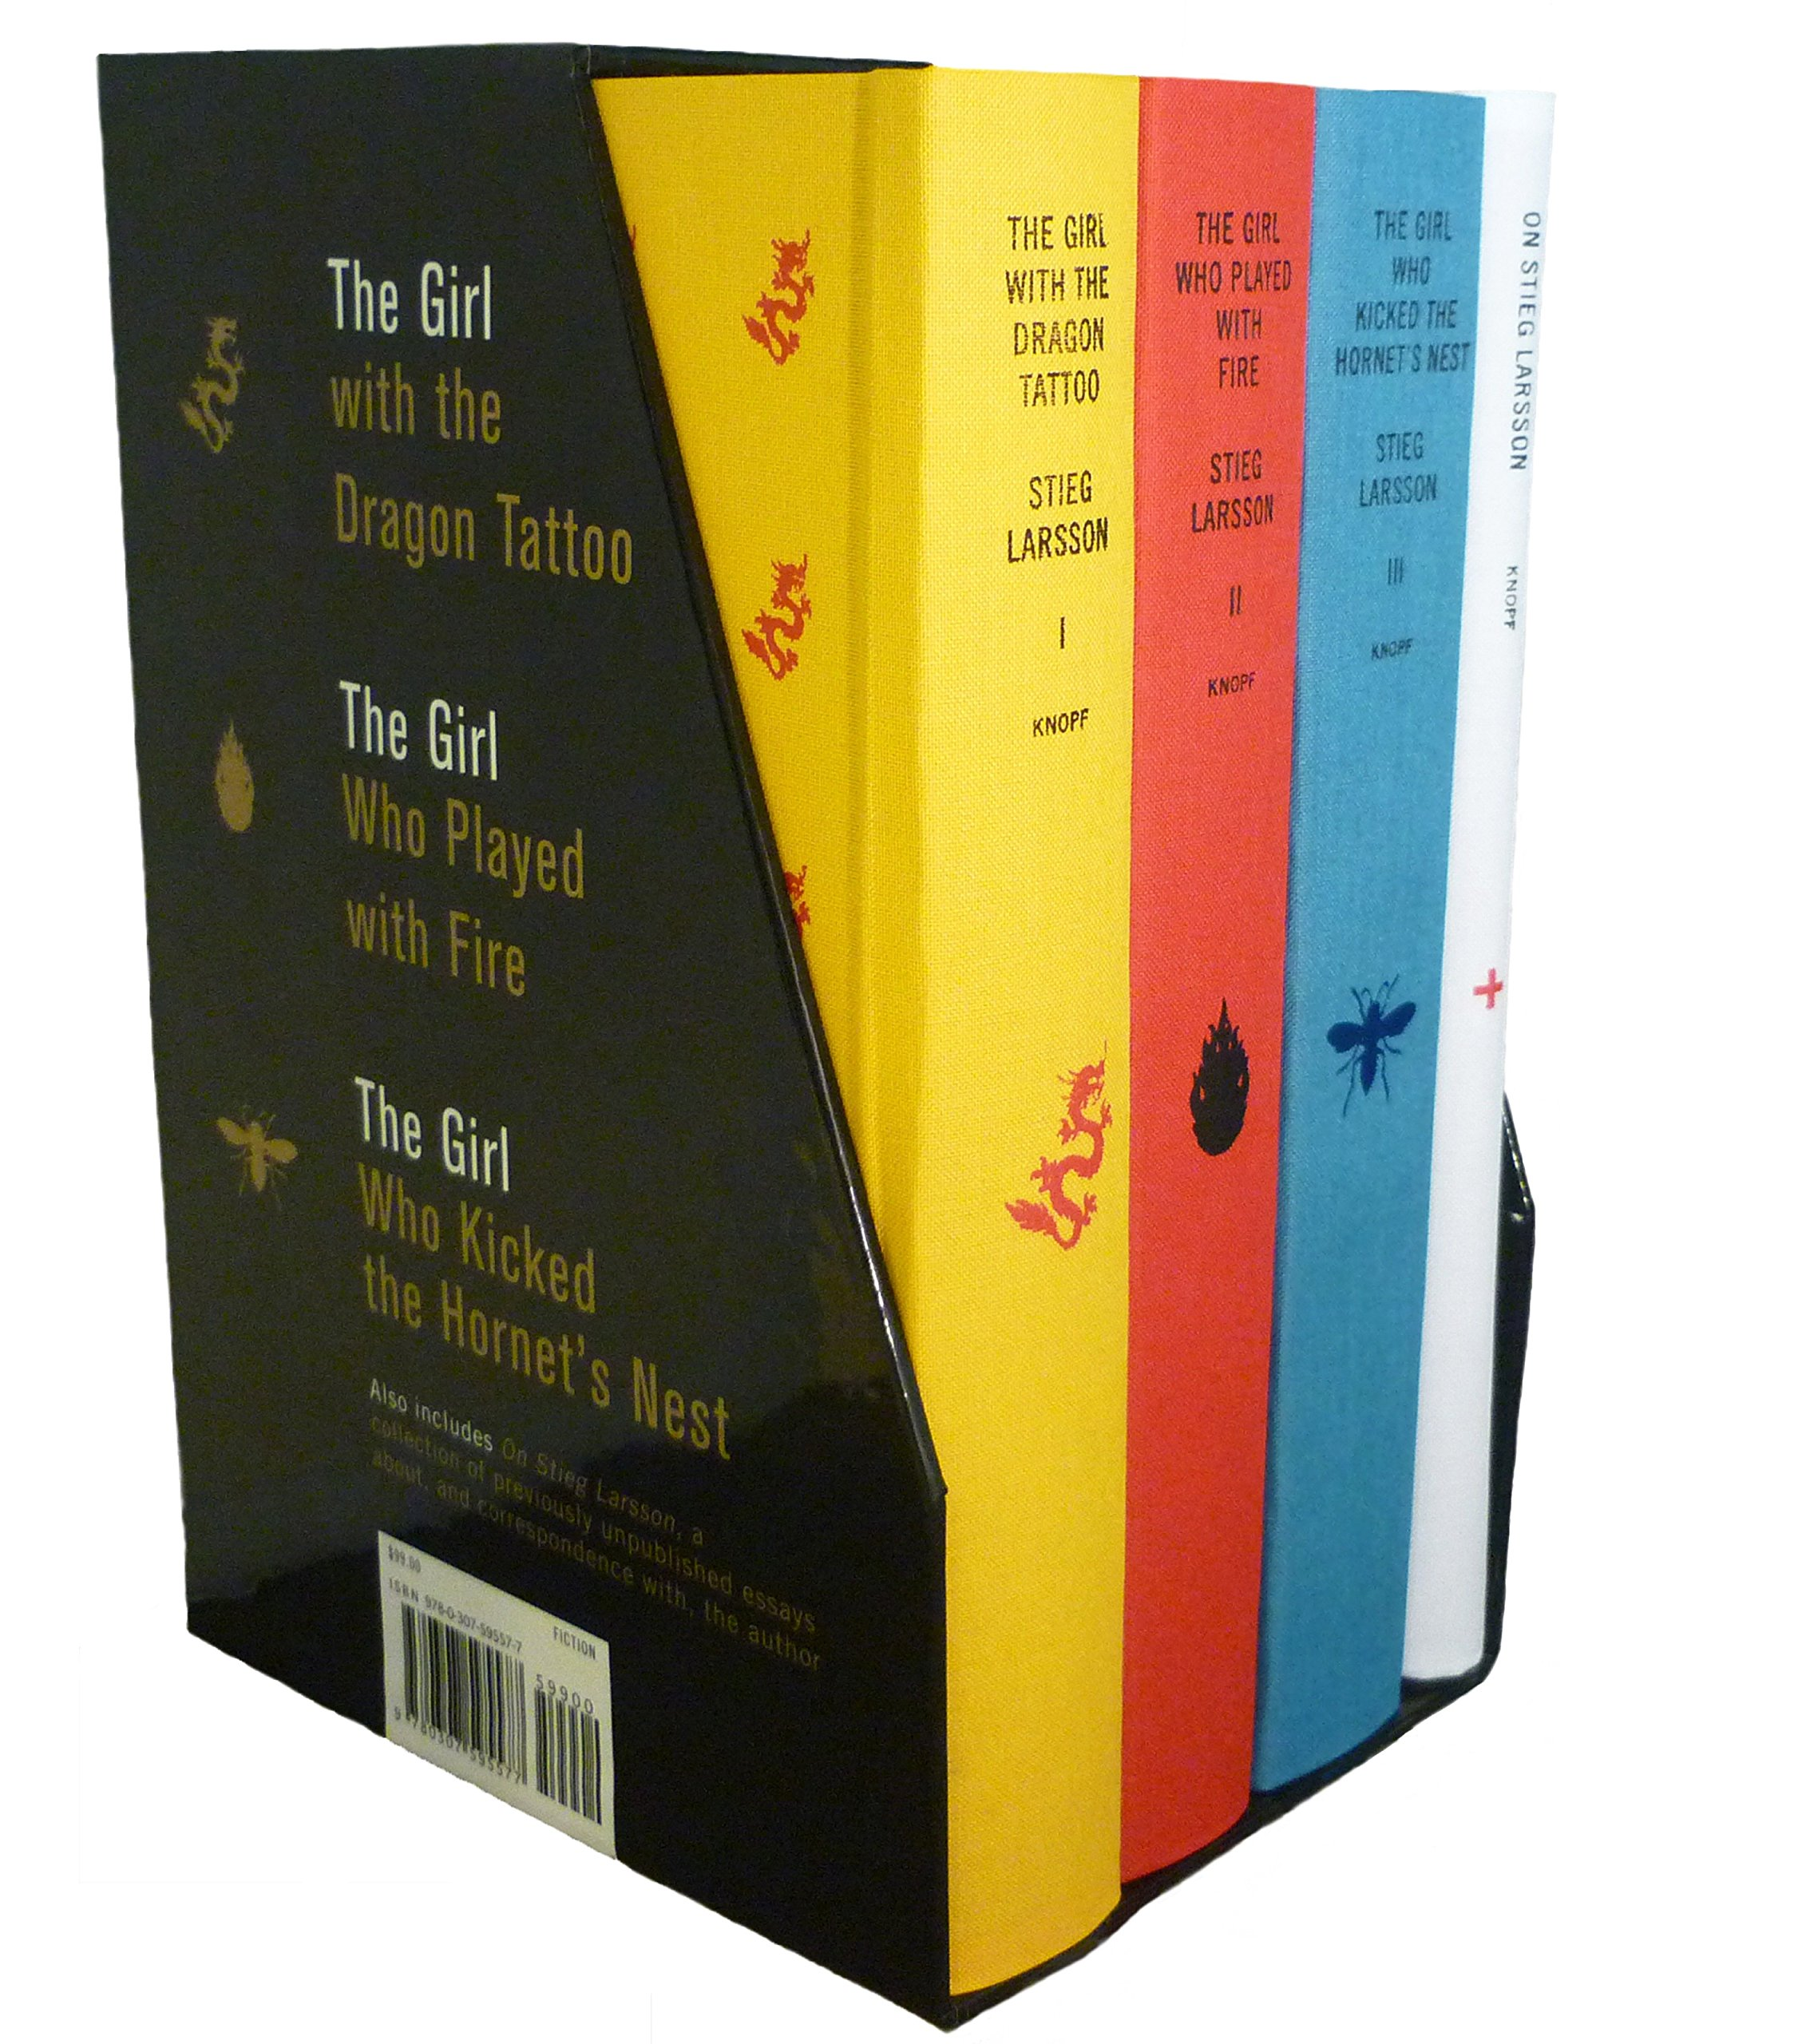 Stieg Larsson's Millennium Trilogy Deluxe Box Set: The Girl with the Dragon Tattoo, The Girl Who Played with Fire, The Girl Who Kicked the Hornet's Nest, Plus On Stieg Larsson by Knopf Publishing Group